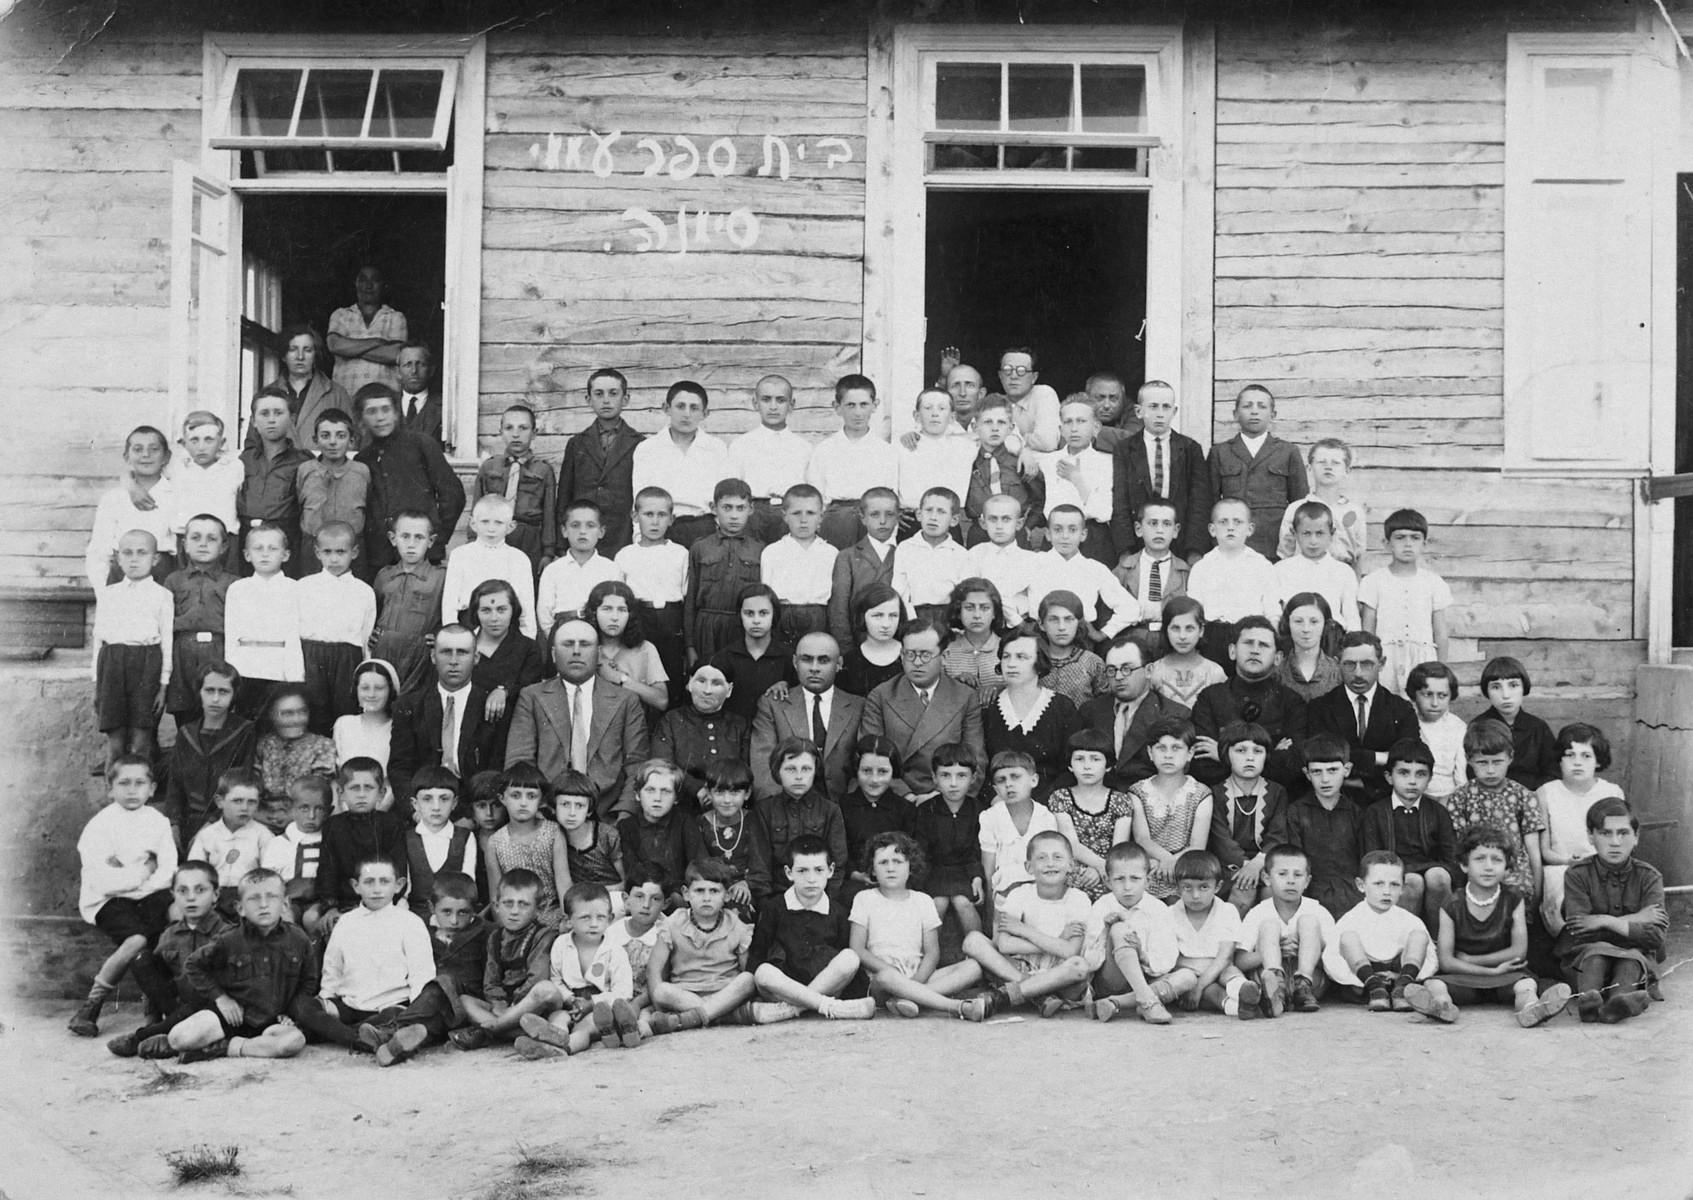 Group portrait of the students in the Hebrew school in Simnas Lithuania.  Among those pictured are the four Weinstein brothers.  Aba is standing in the top row, fifth from the right.  Benjamin is on the far right of the top row.  Joseph is in the second row, second from the left.  Yehuda is in the first row, sixth from the left.